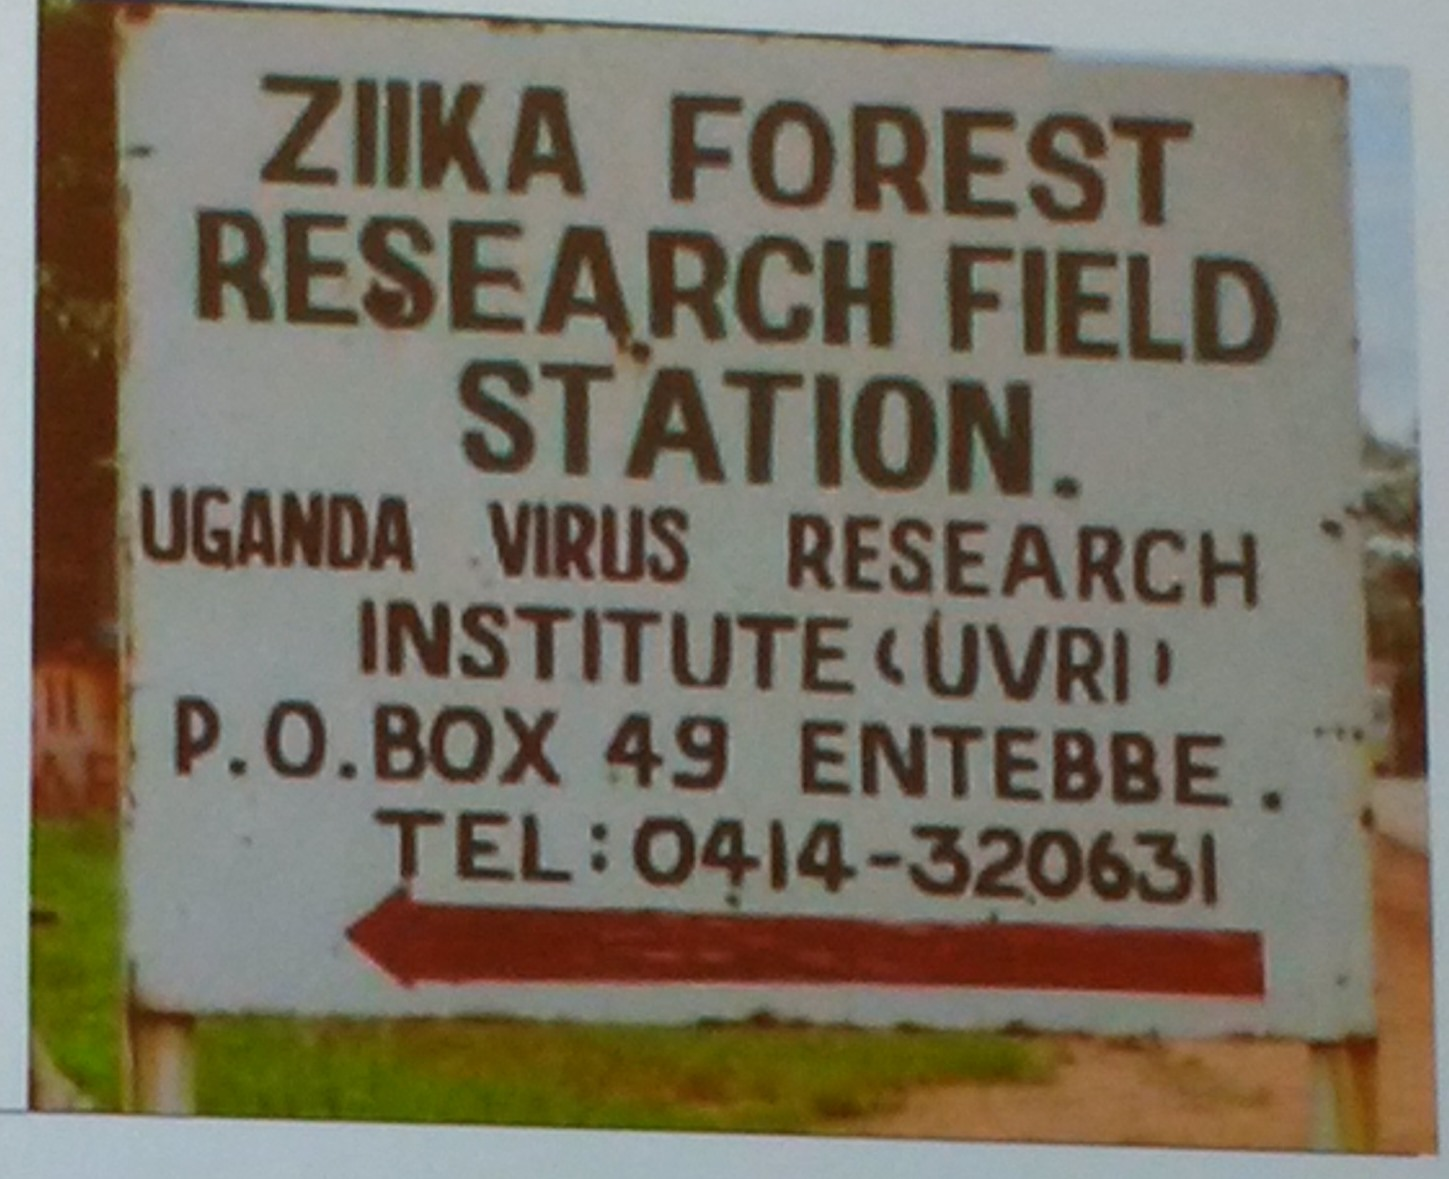 Zika research station